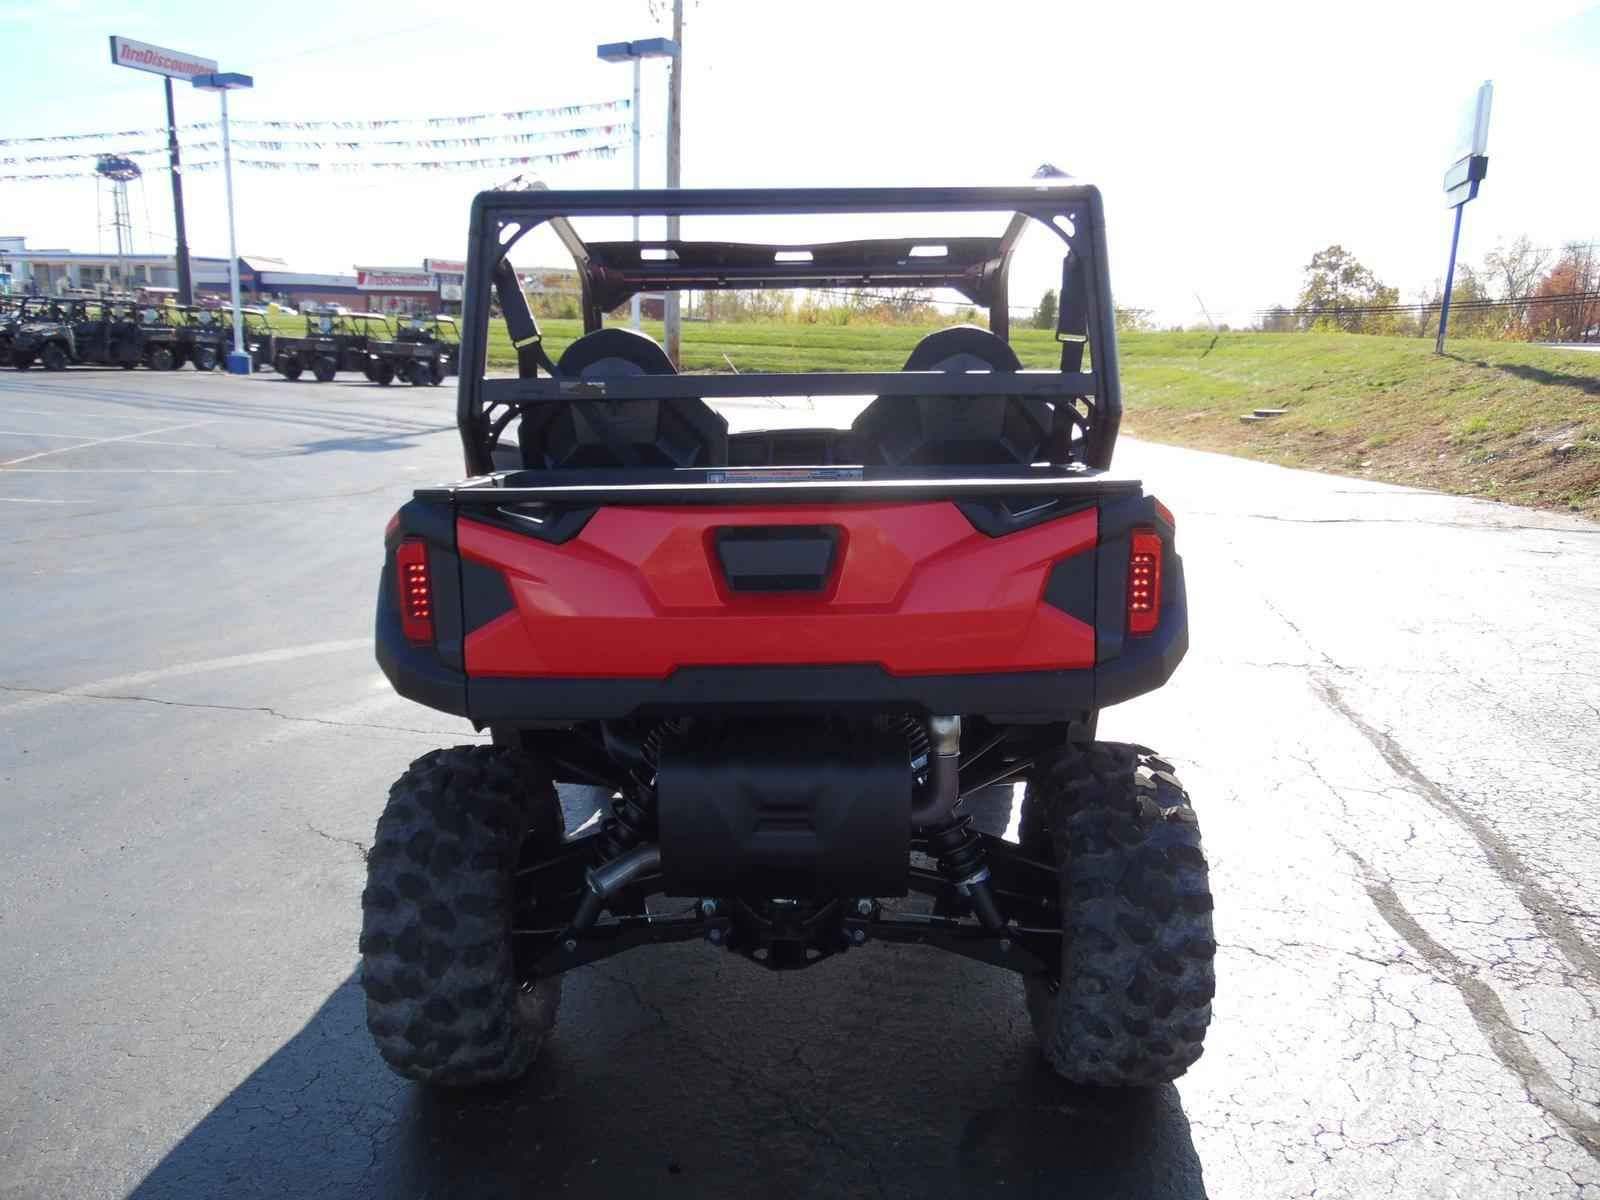 New 2017 Polaris Polaris General 1000 Eps Indy Red Atvs For Sale In Kentucky 2017